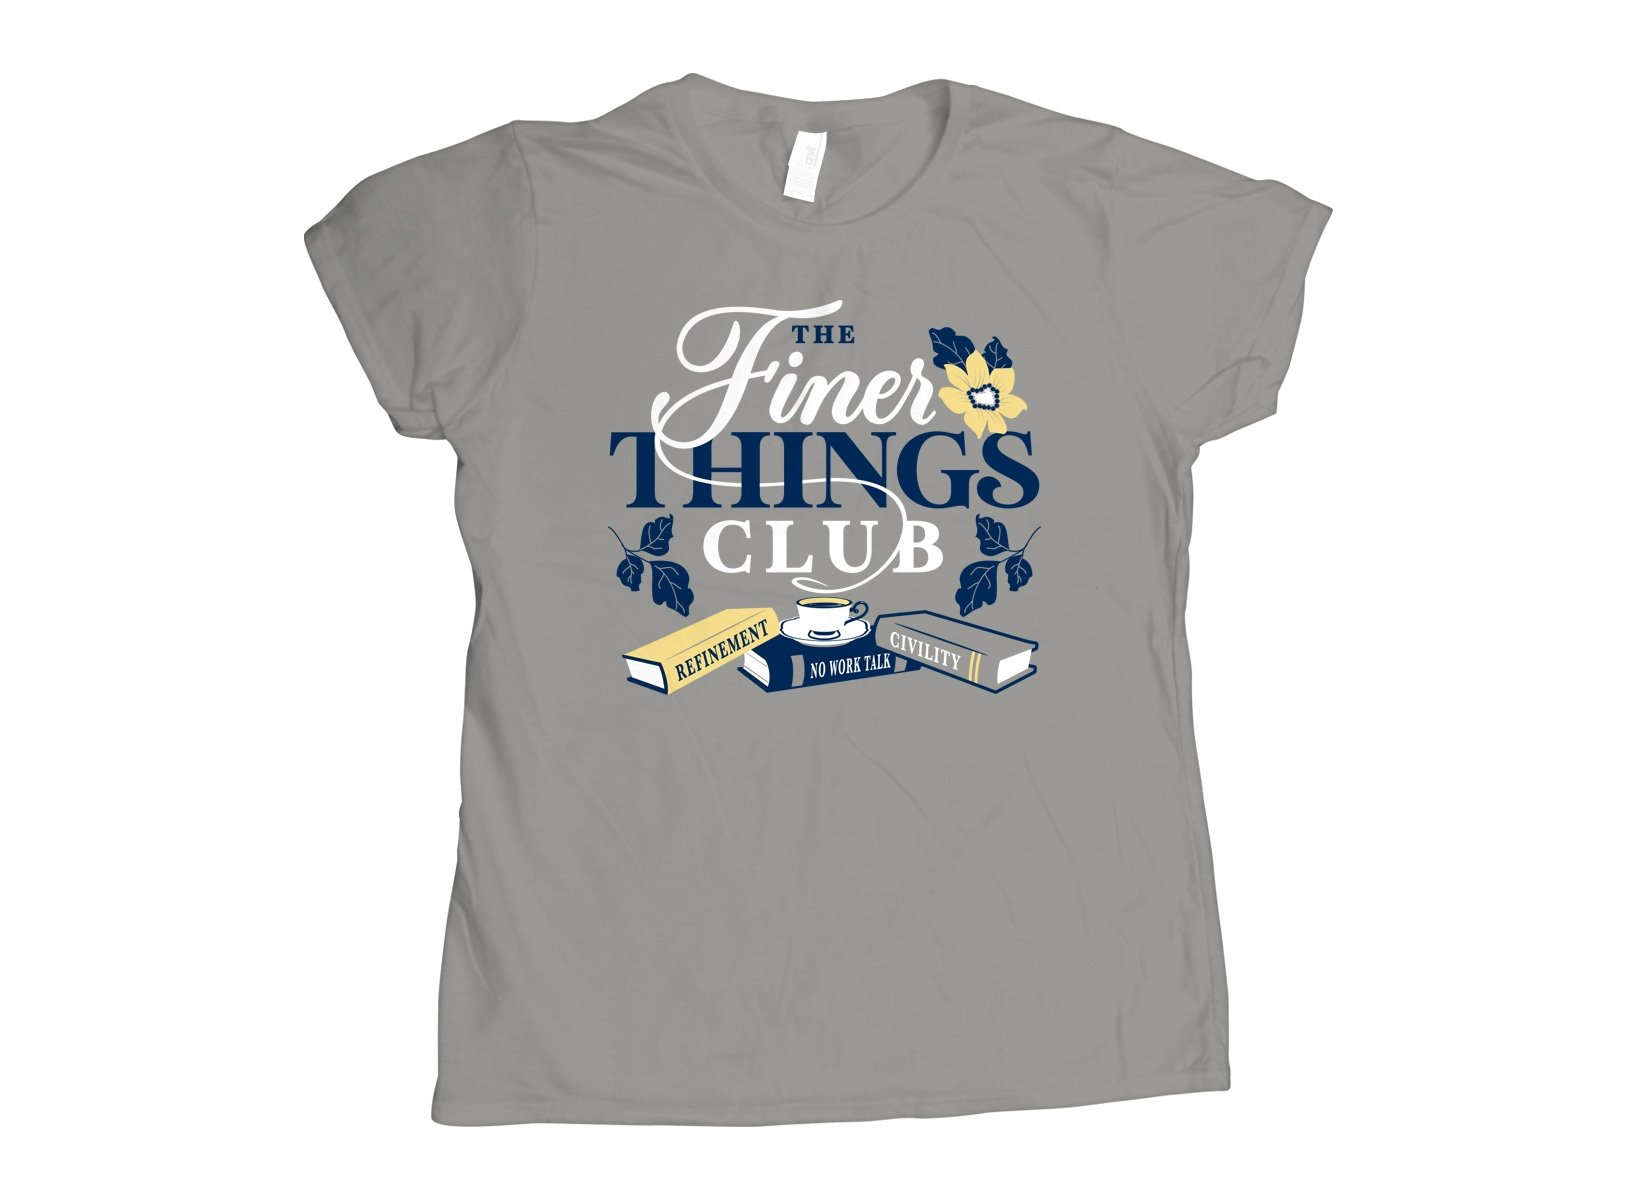 The Finer Things Club on Womens T-Shirt